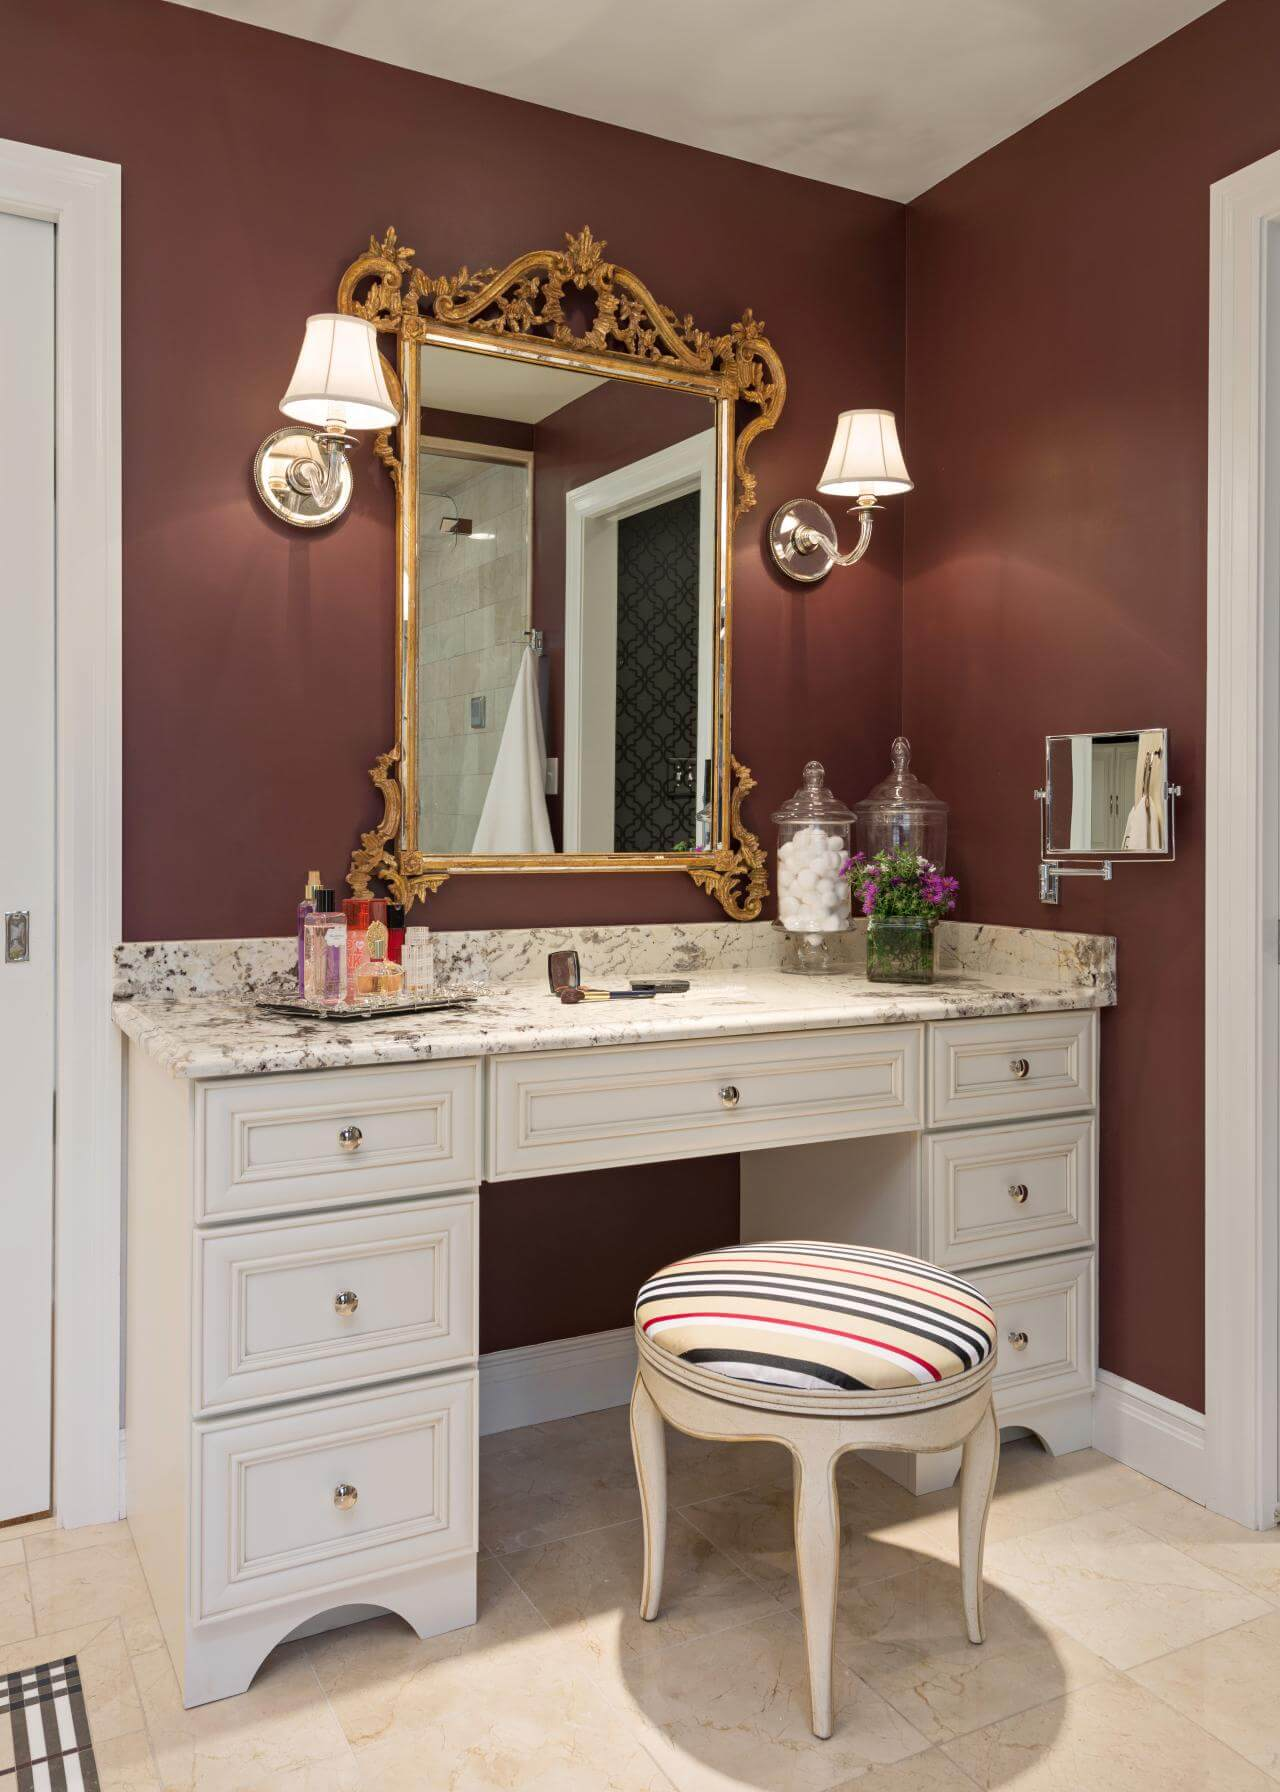 15 stunning makeup vanity decor ideas style motivation for Bathroom vanity designs